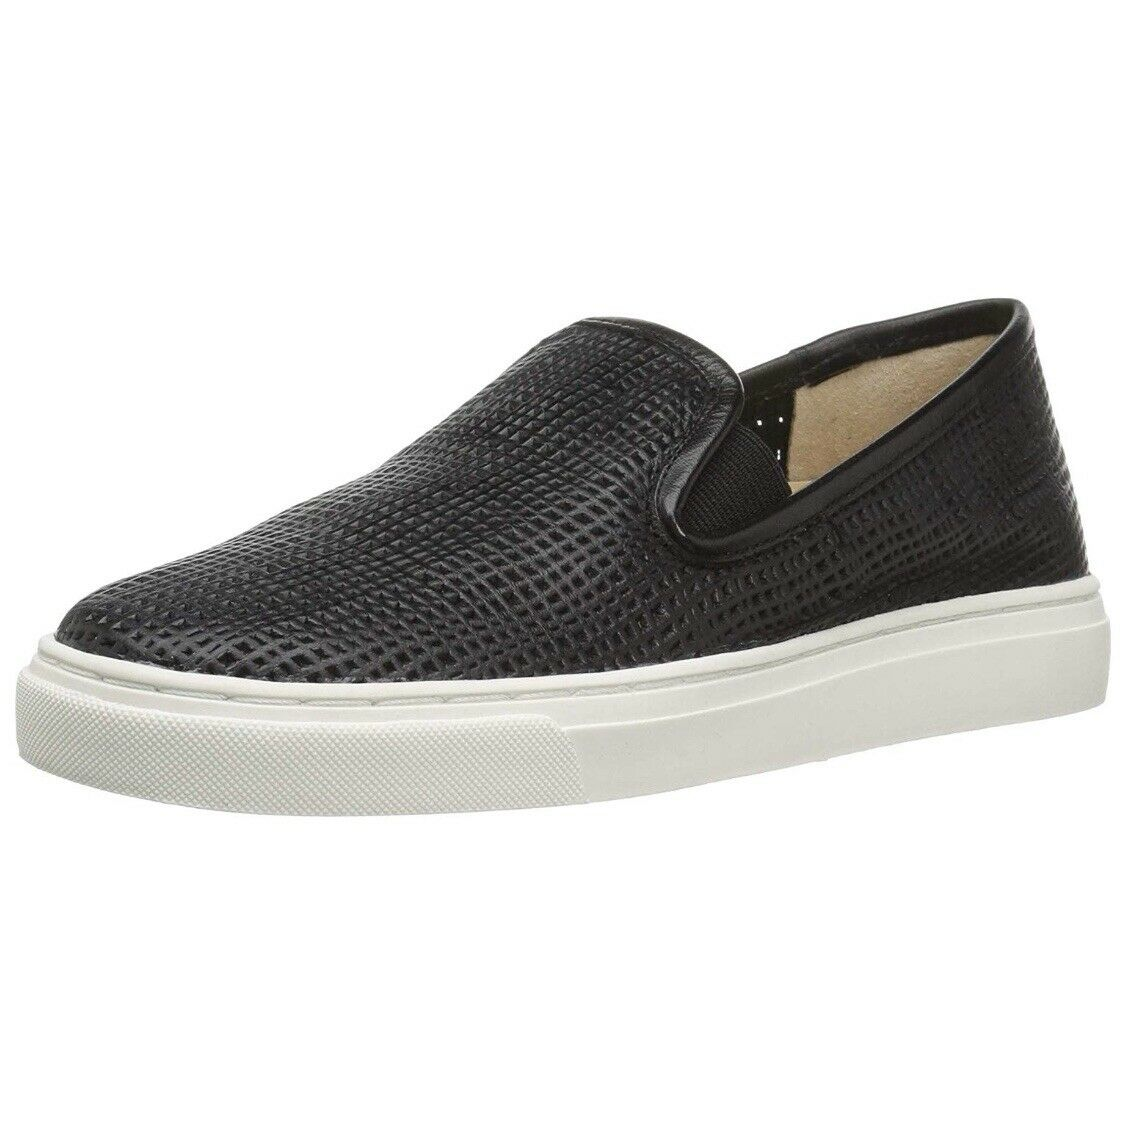 Vince Camuto Becker Woven Casual Slip